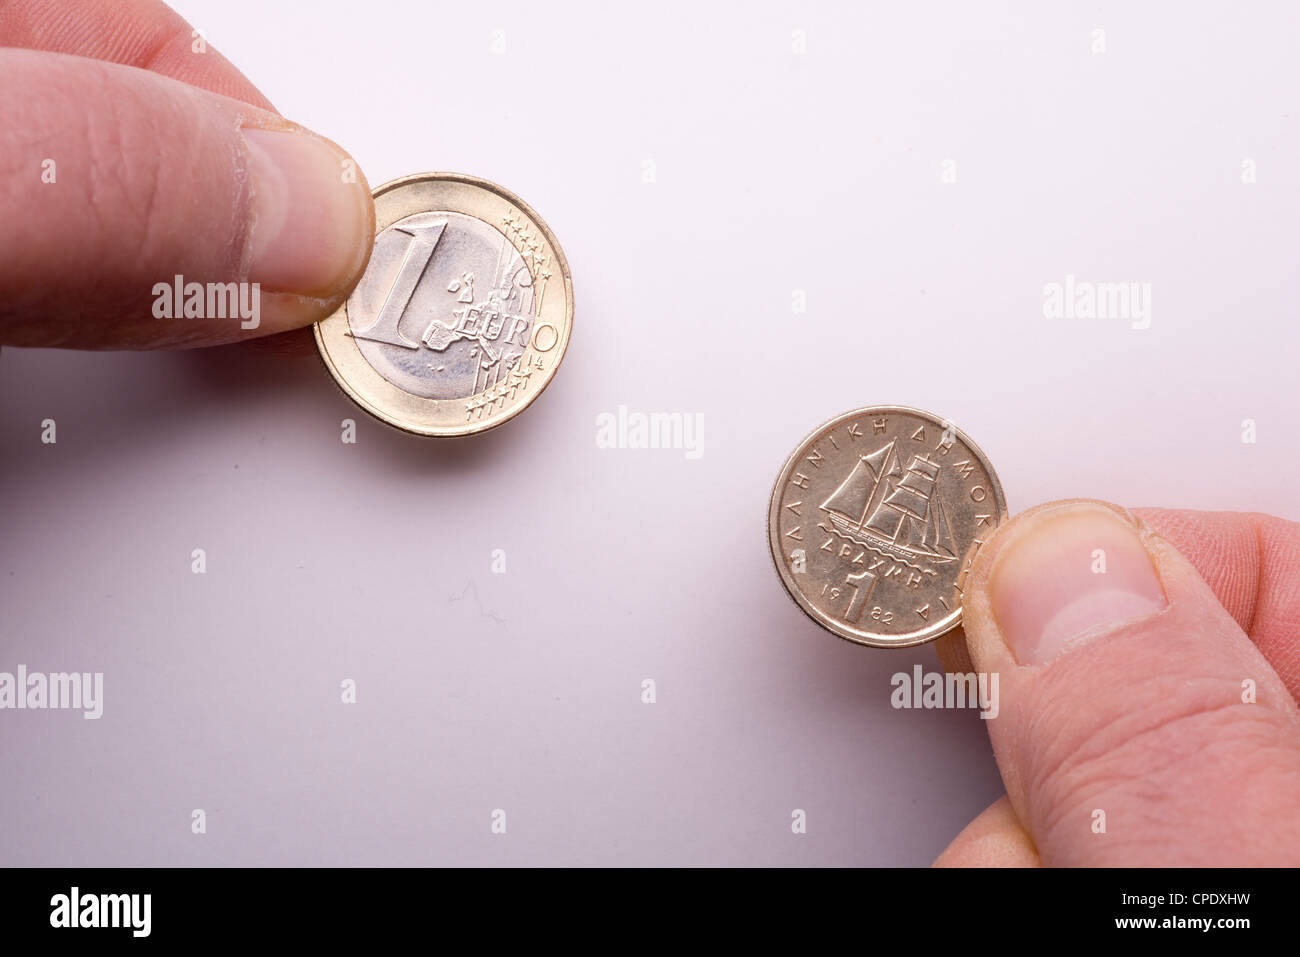 Economic crisis in Greece, the future of euro. the passage at dracma currency. - Stock Image